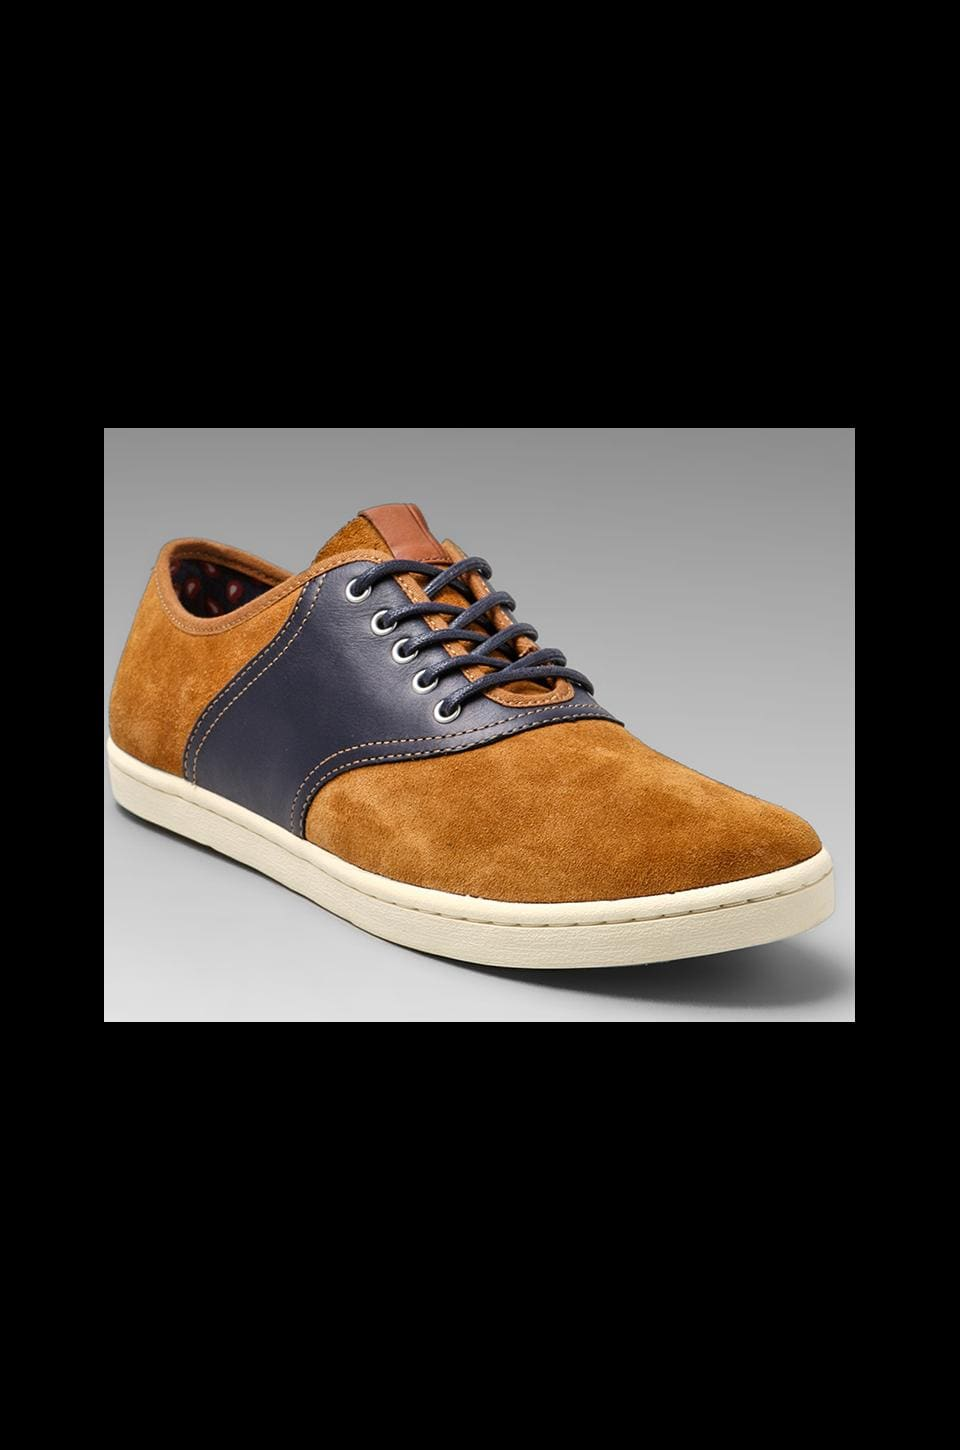 Fred Perry Colyer Suede Leather in Rubber/Carbon